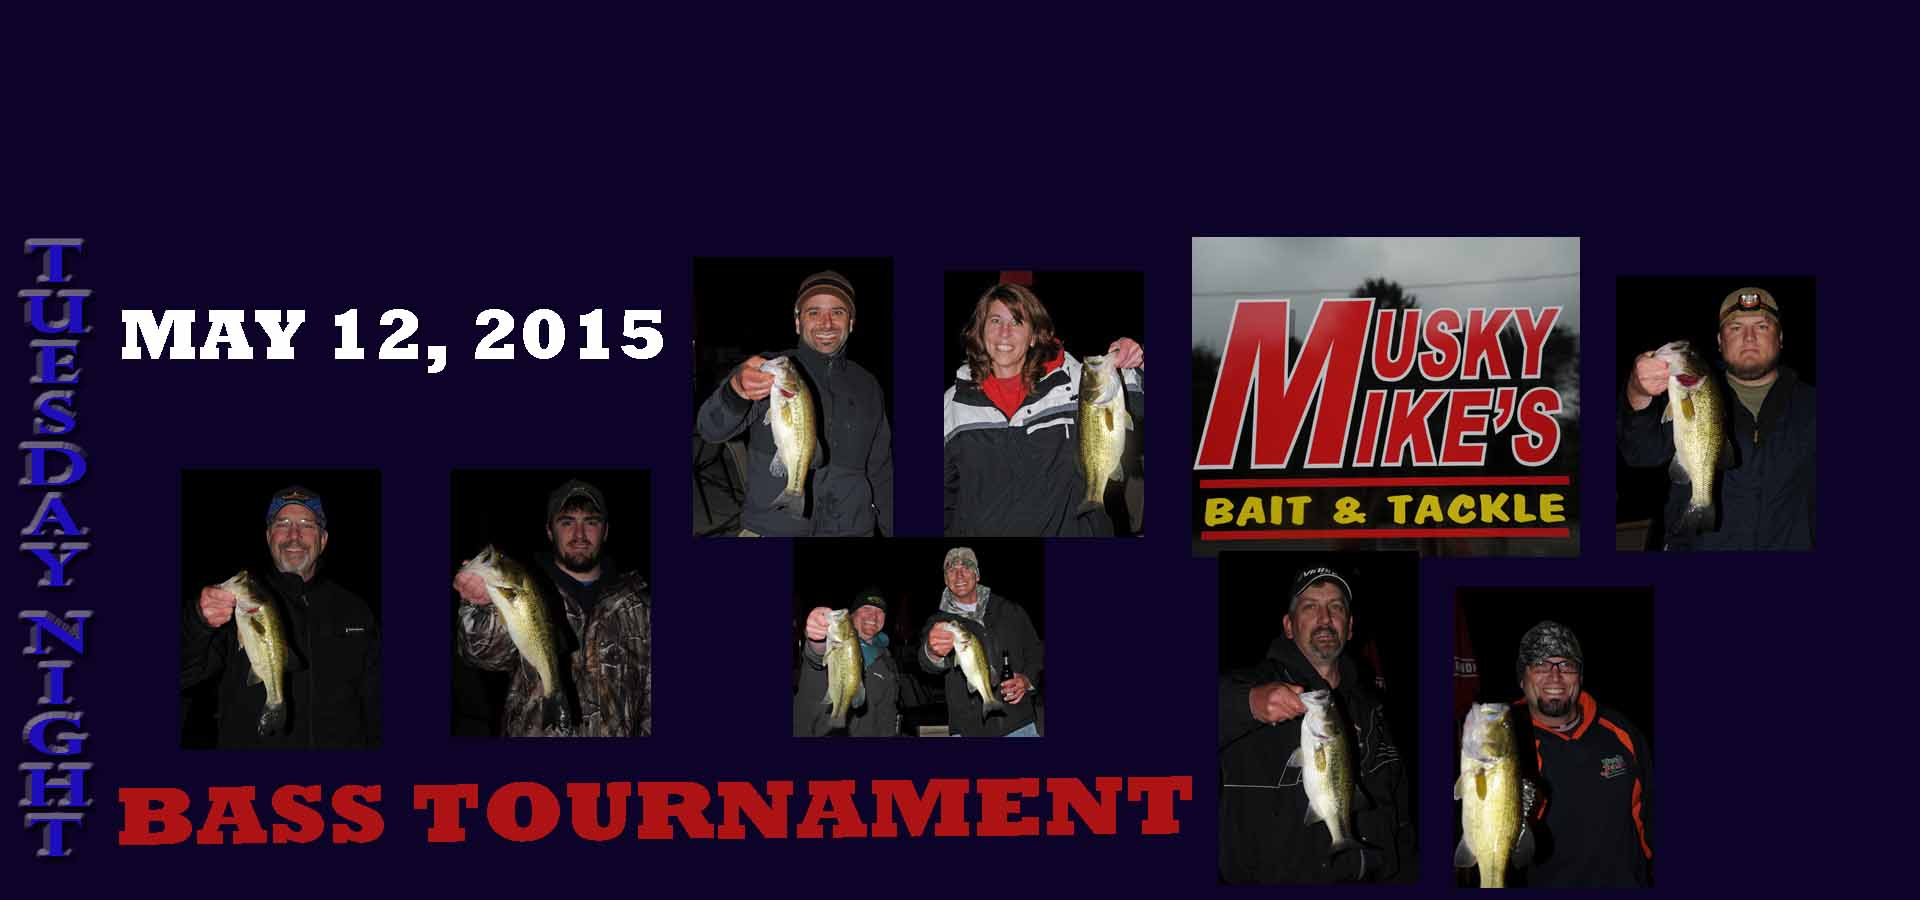 BASS TOURNAMENT may 12